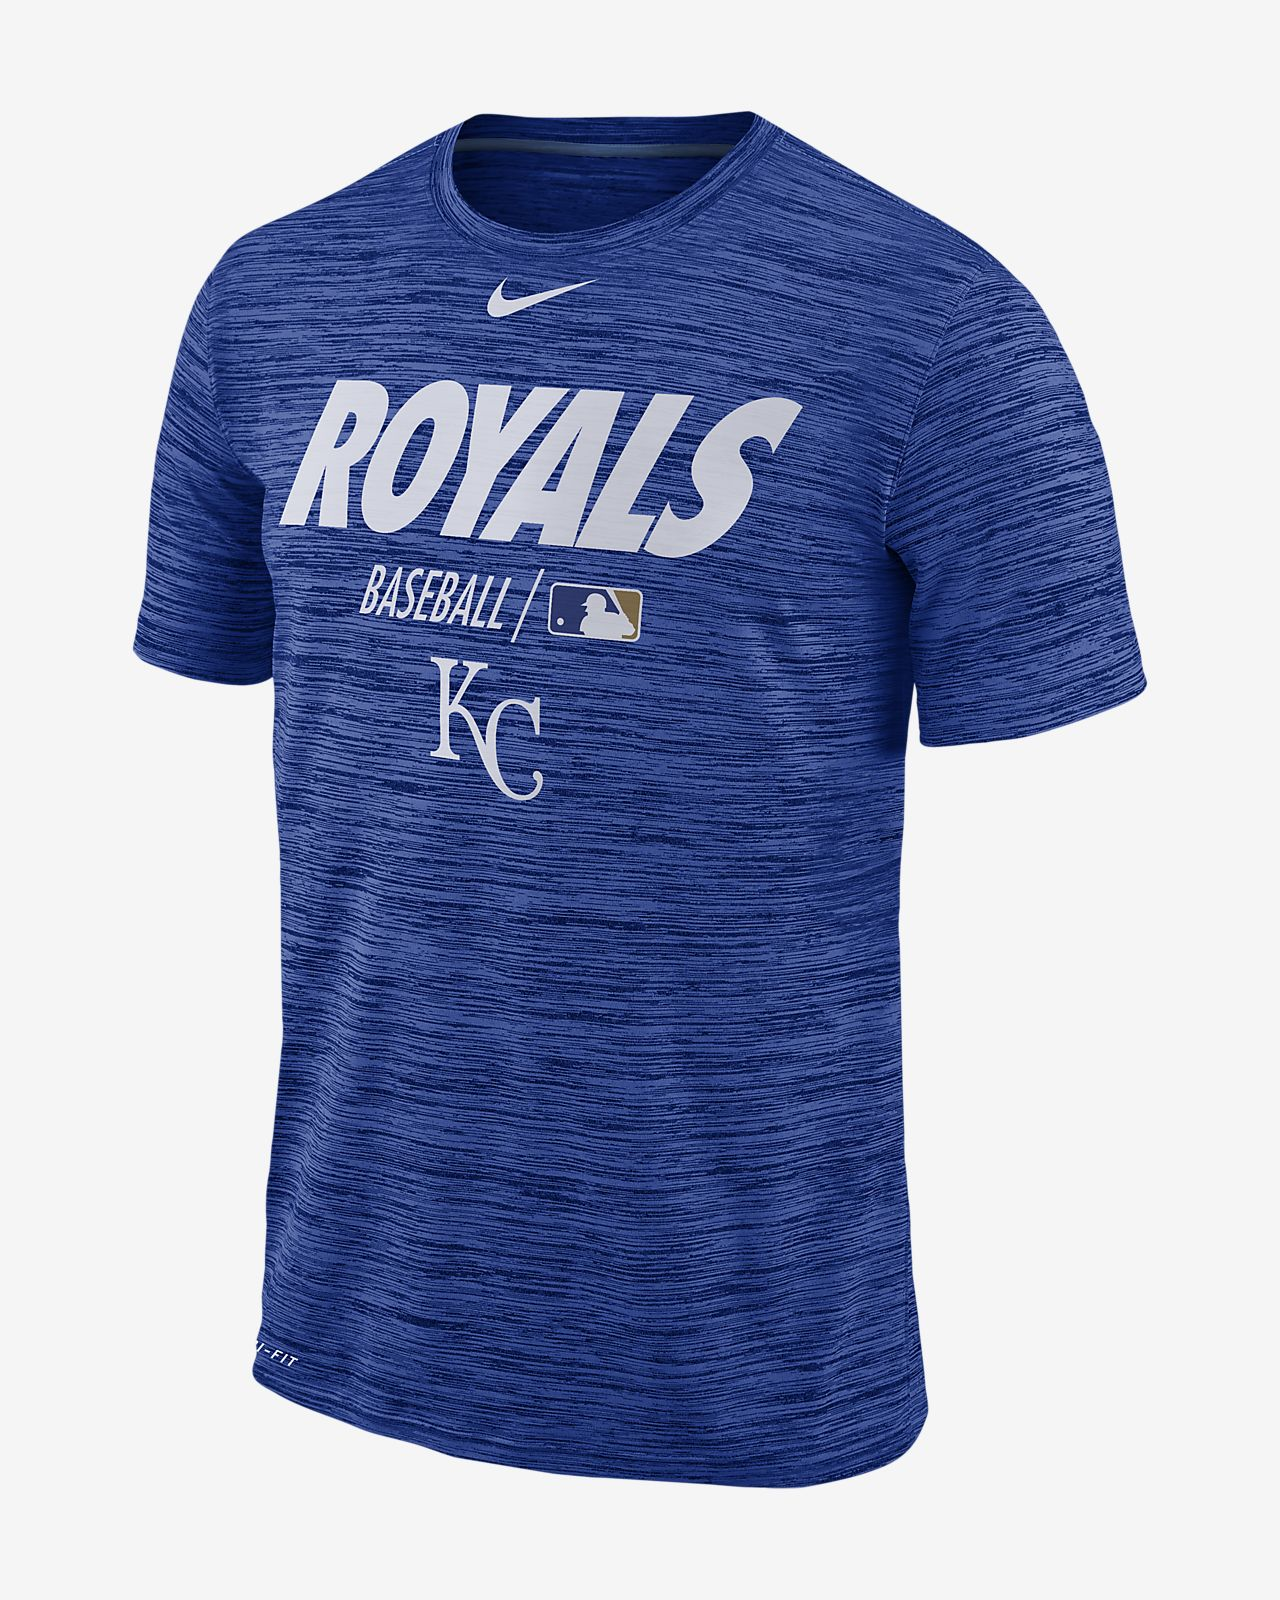 Shirts Royals Royals Cool Shirts Cool Cool Shirts Royals Royals Cool abcfbdababa|Jan 4, 2019